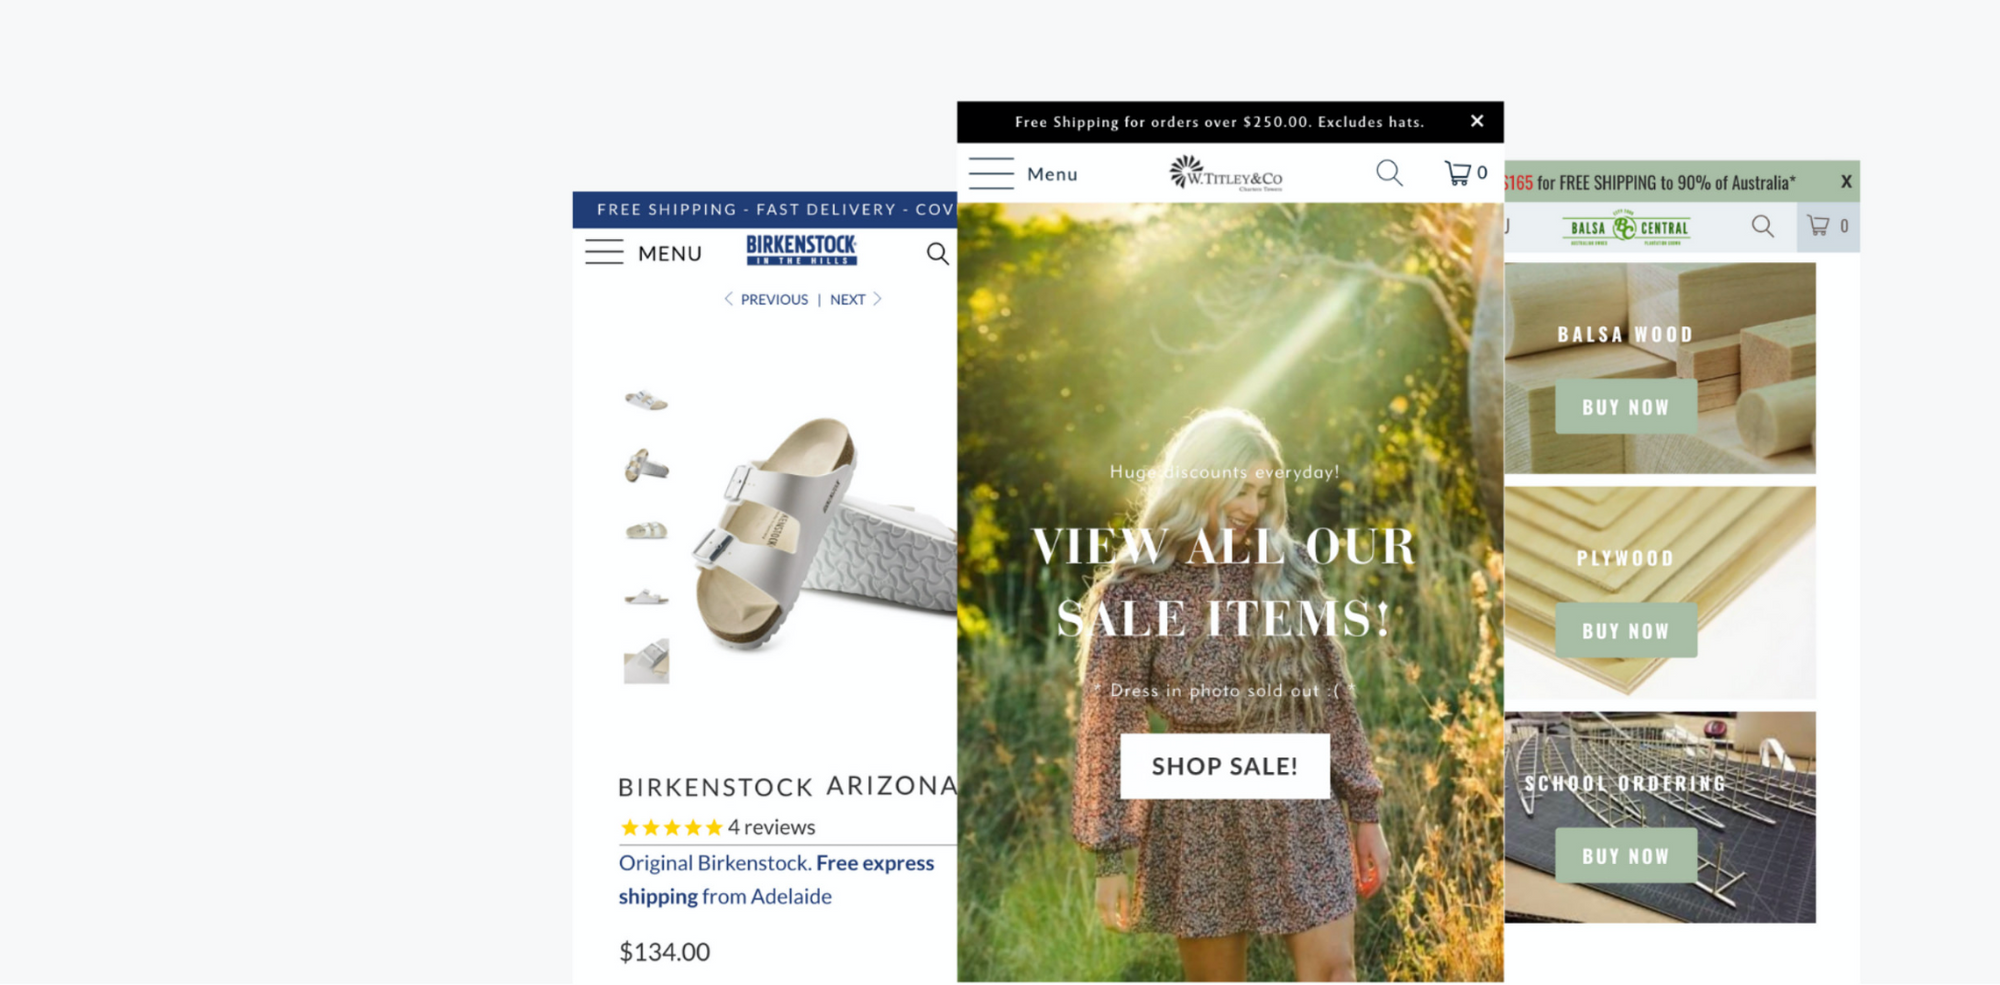 Birkenstock In the Hills, W Titleys & Co, Balsa central: Shopify growth program case studies